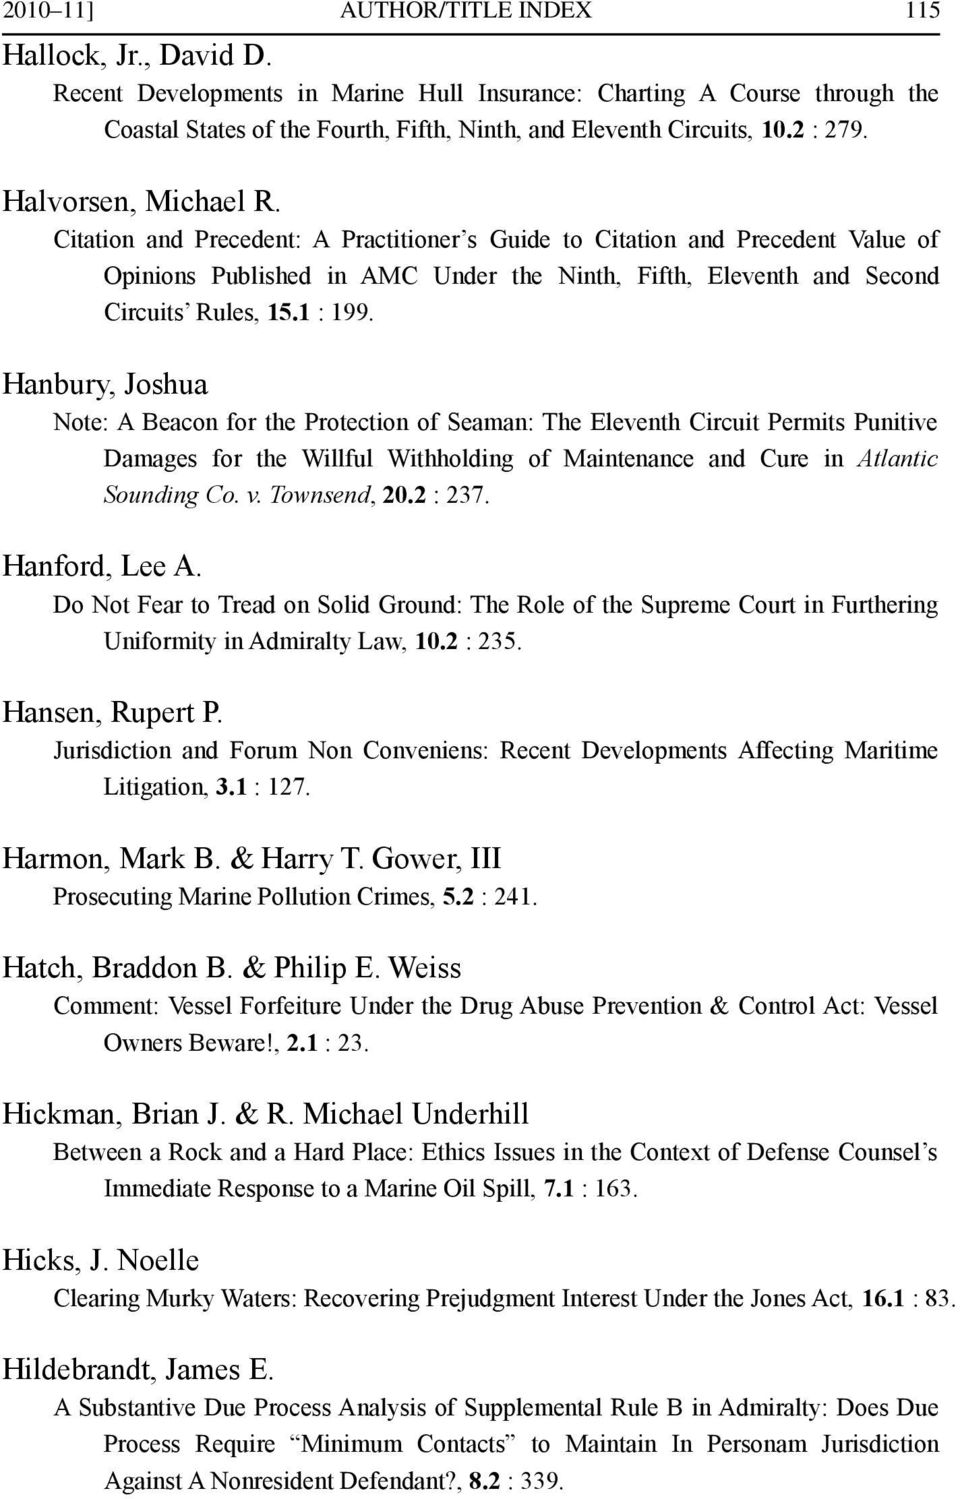 Citation and Precedent: A Practitioner s Guide to Citation and Precedent Value of Opinions Published in AMC Under the Ninth, Fifth, Eleventh and Second Circuits Rules, 15.1 : 199.